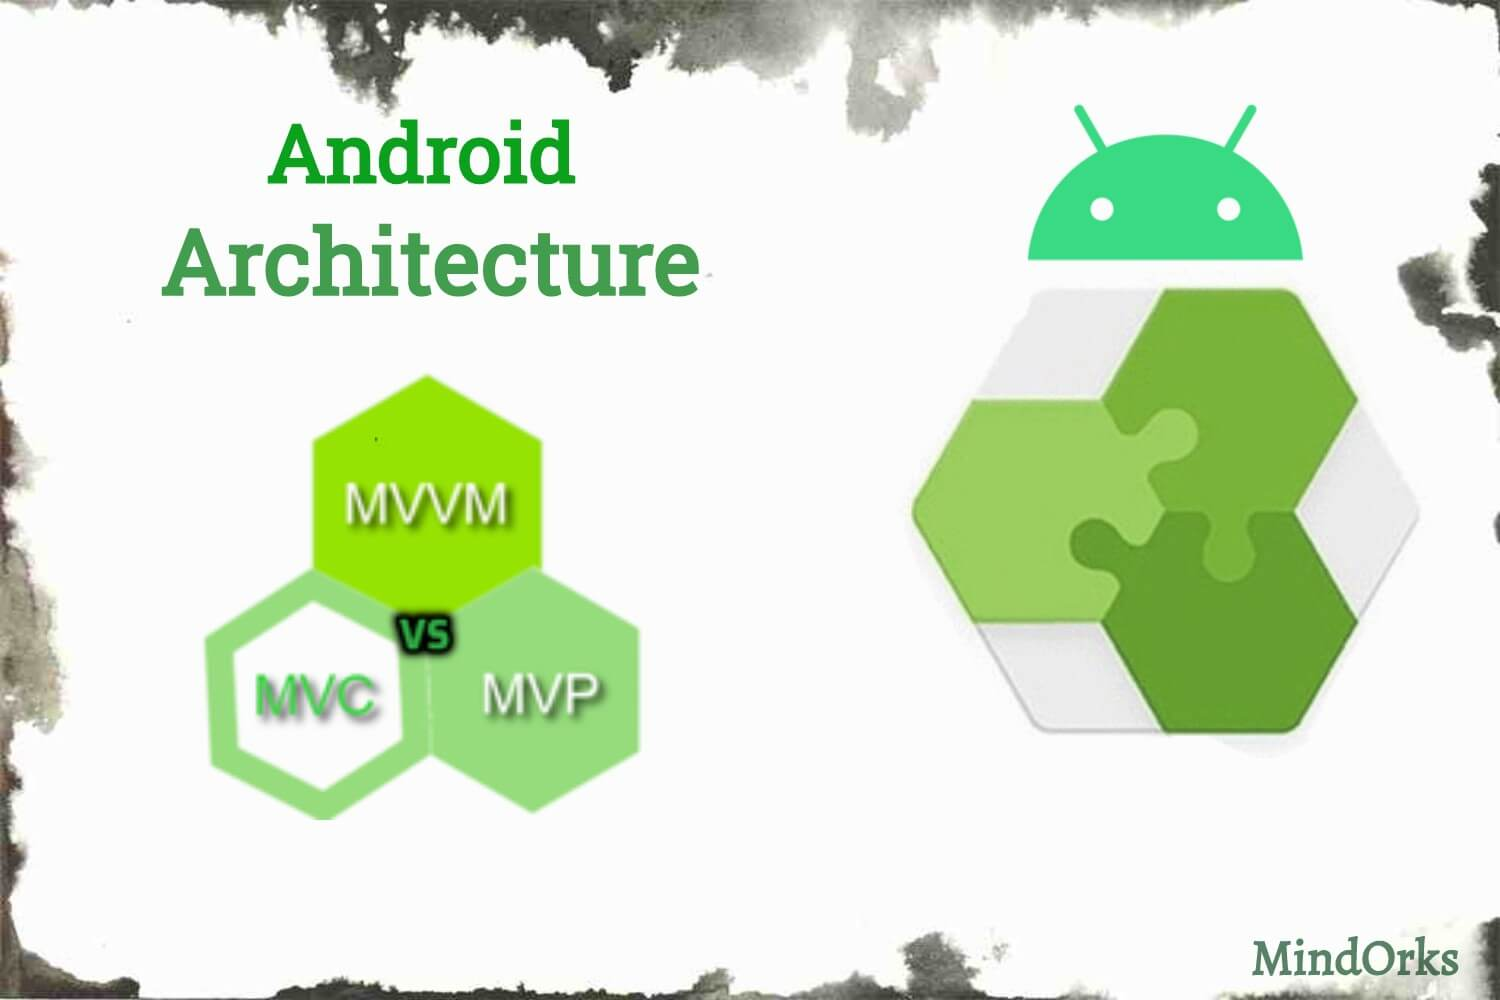 MVC vs MVP vs MVVM architecture in Android